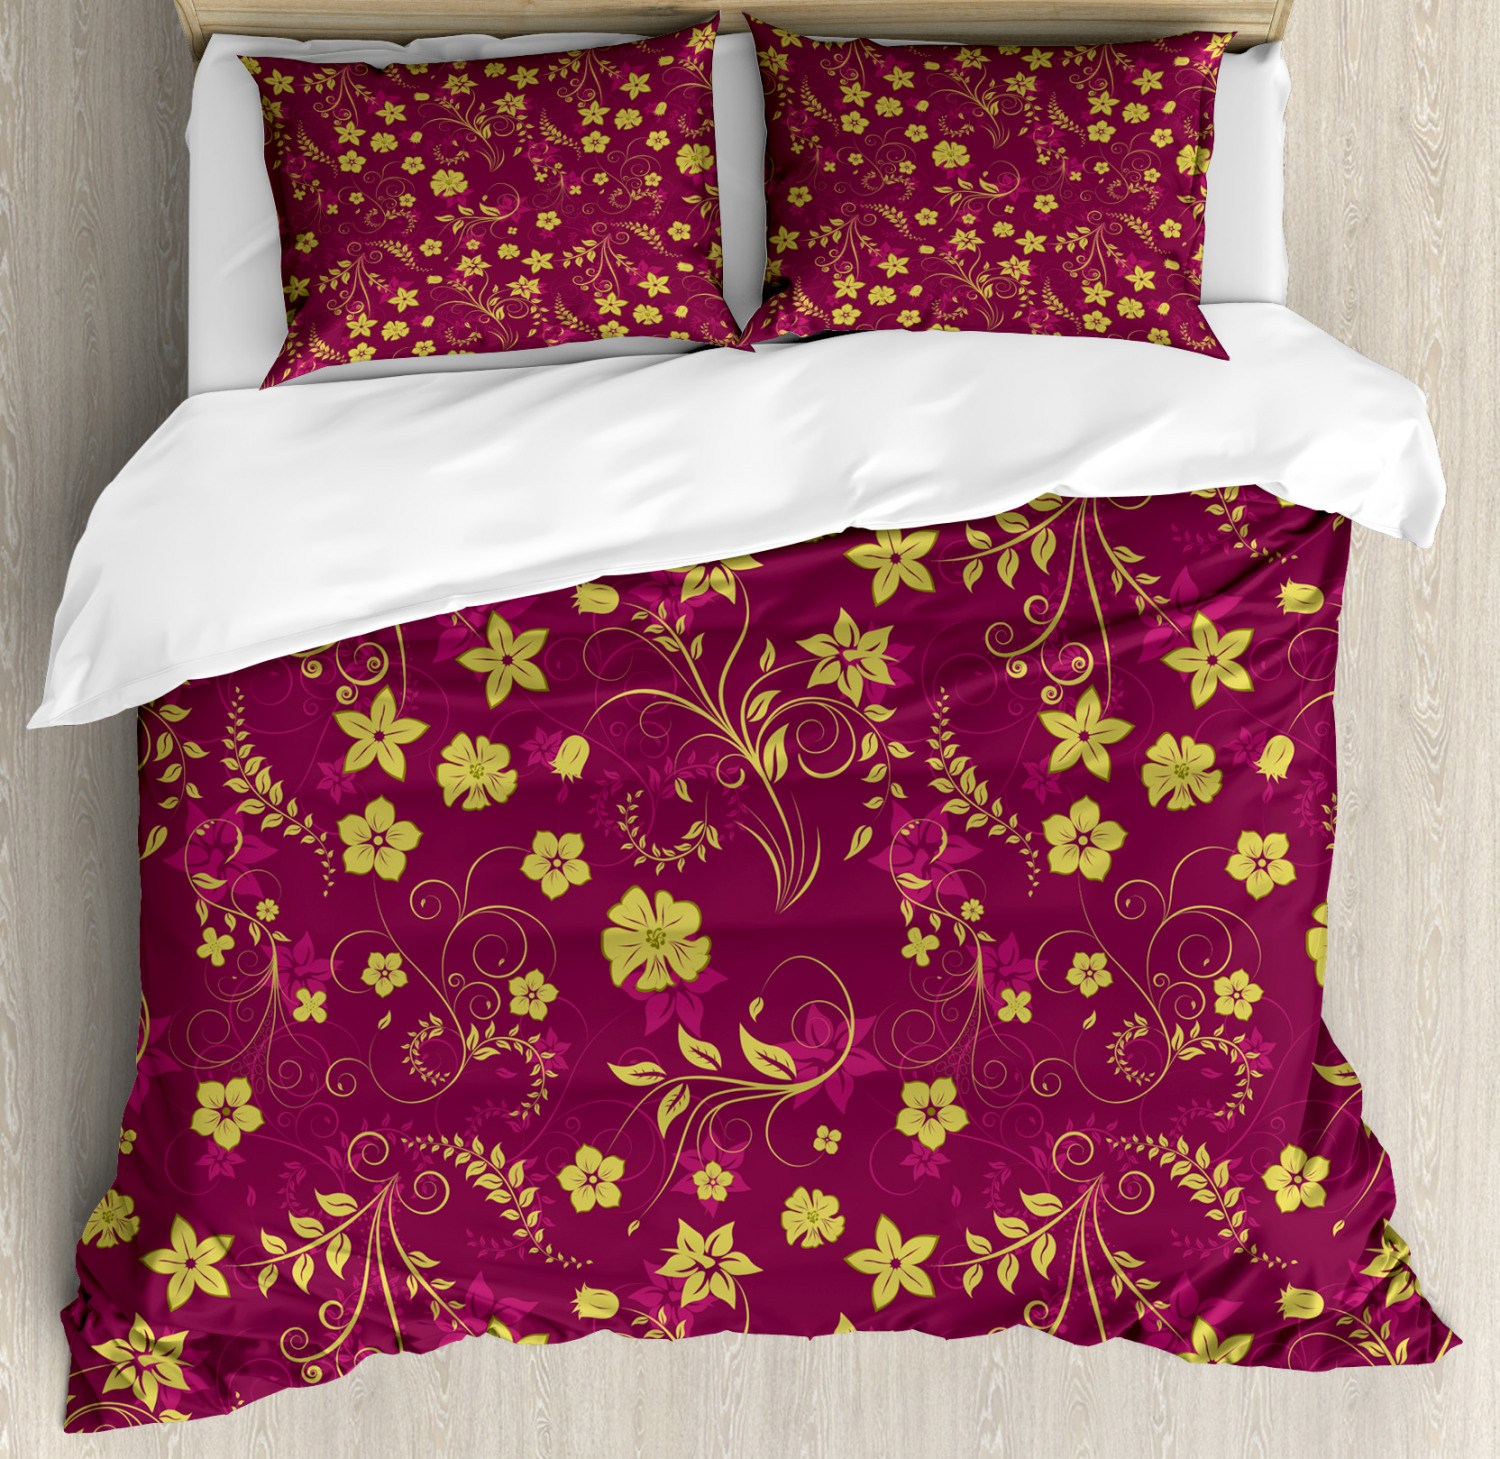 Floral Duvet Cover Set with Pillow Shams Spring Flowers Pattern Print